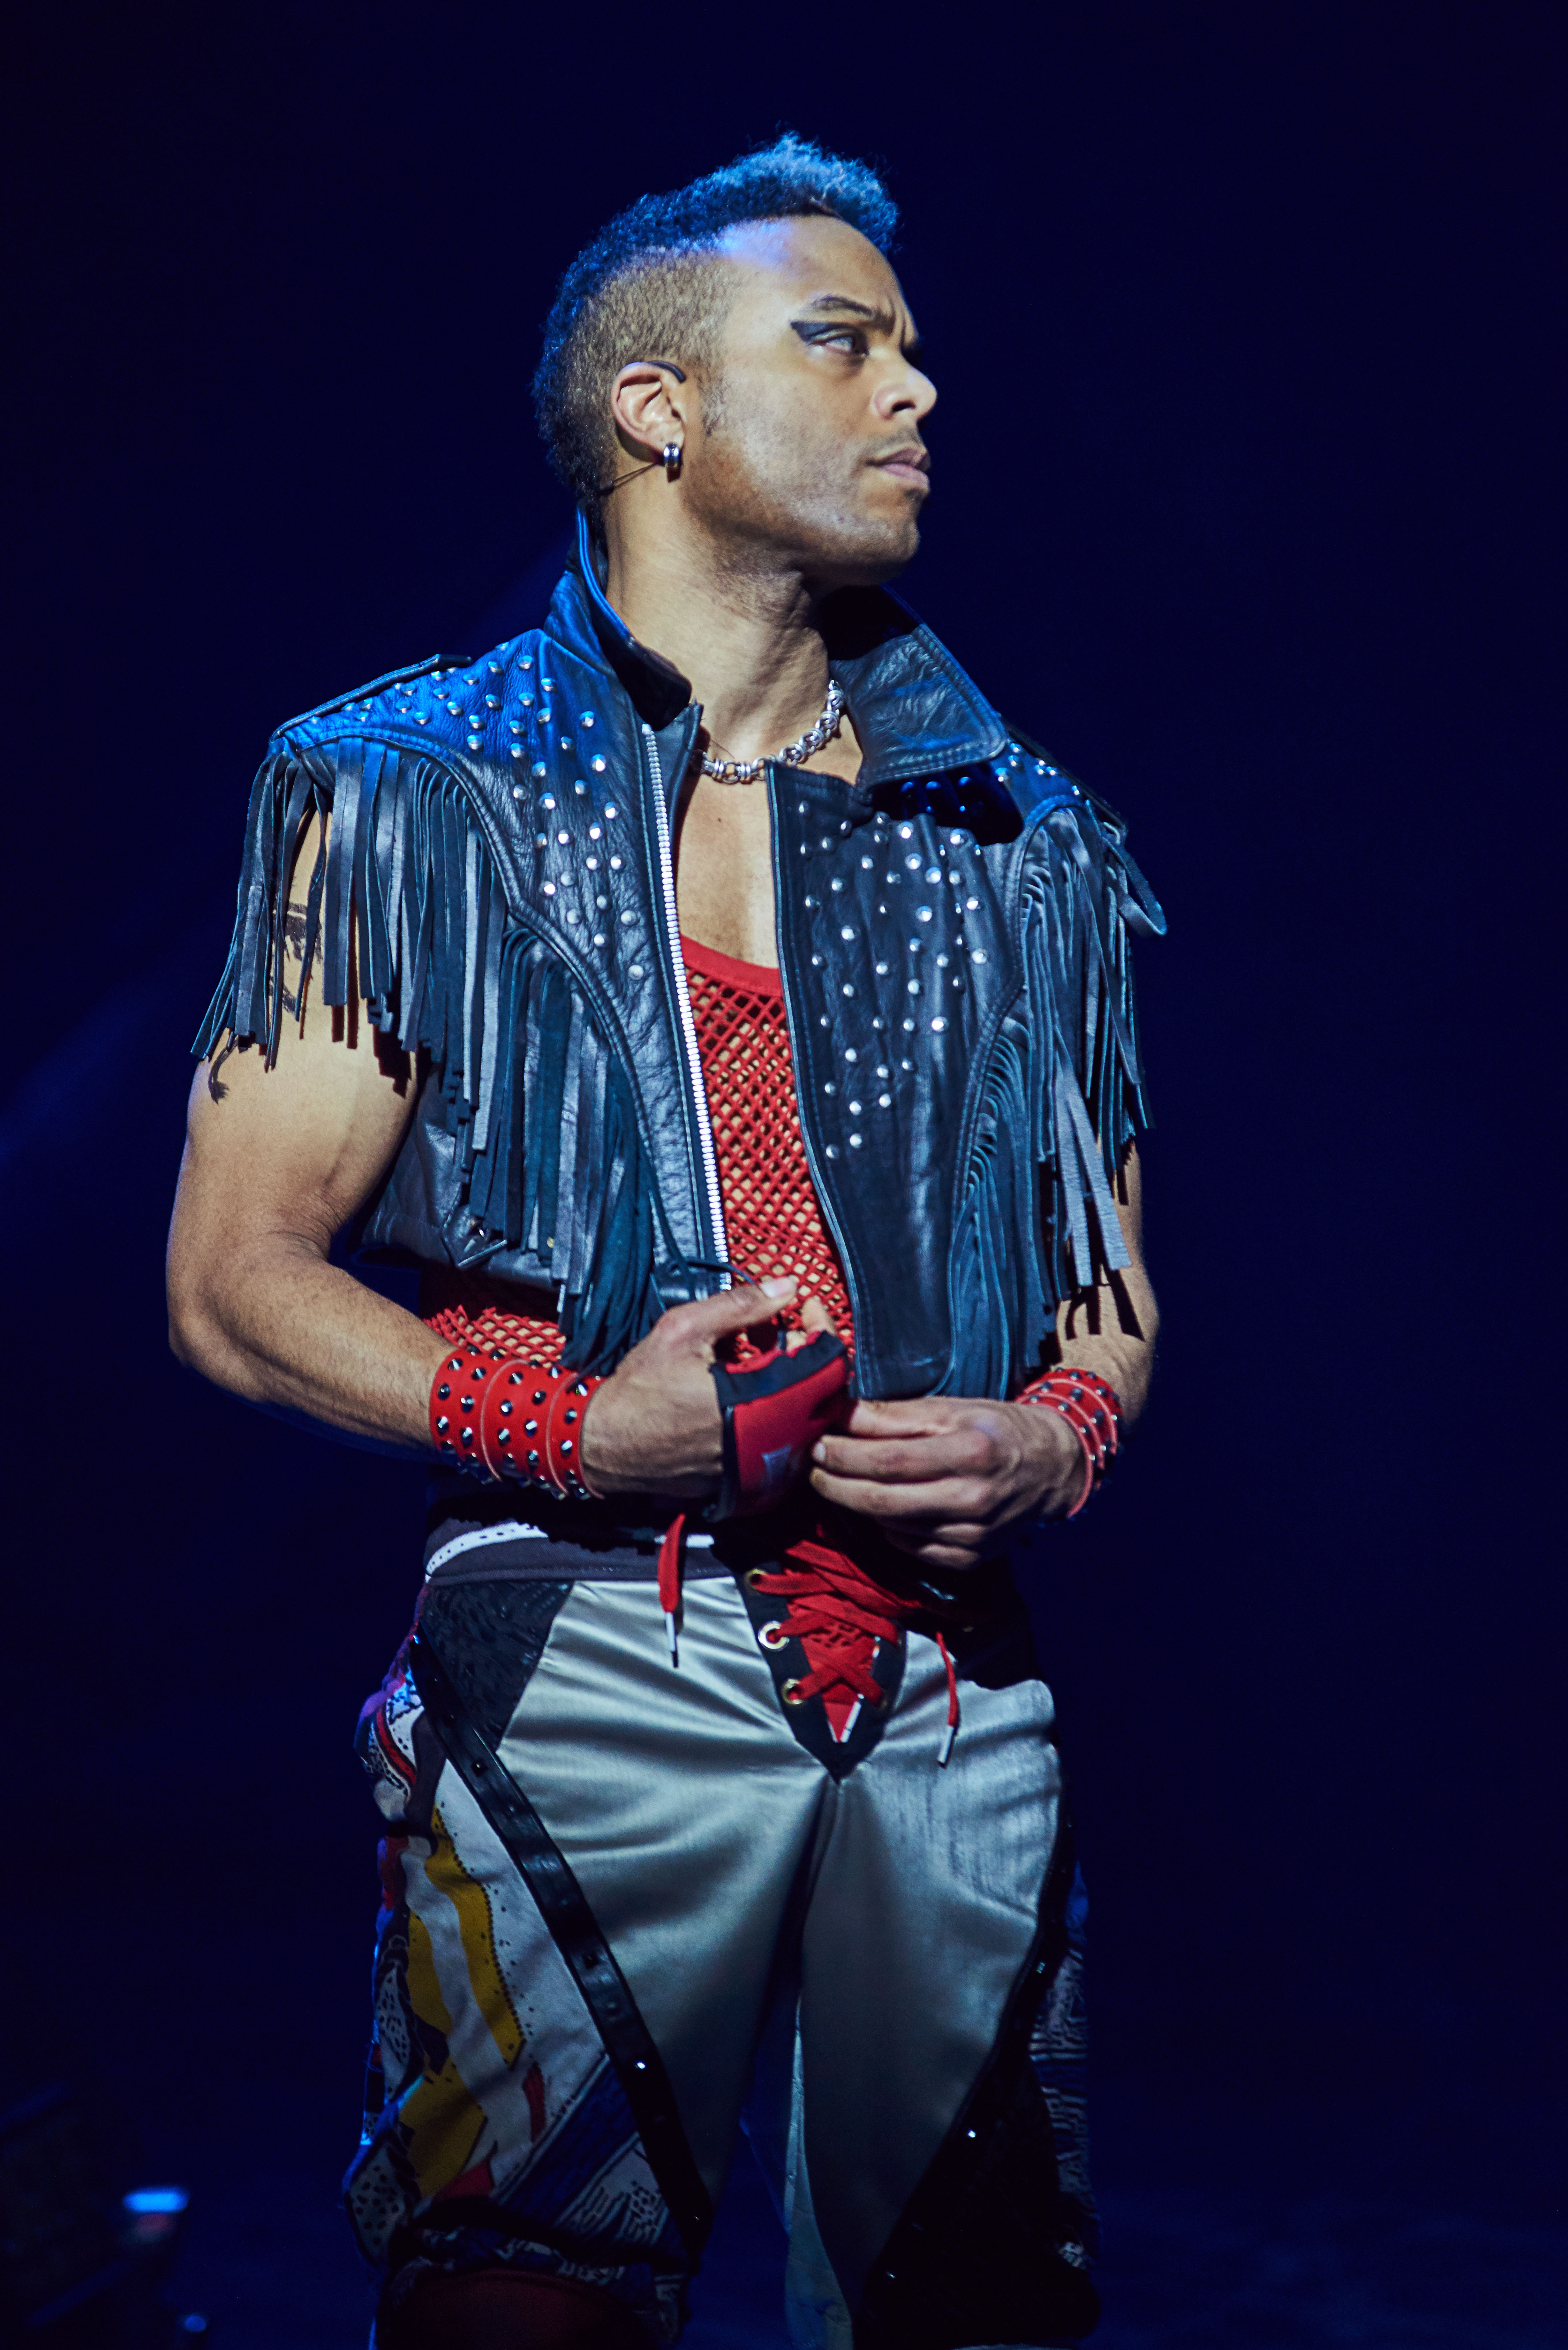 Wayne Robinson as Jagwire in BAT OUT OF HELL THE MUSICAL. Photo Credit - Specular (2)